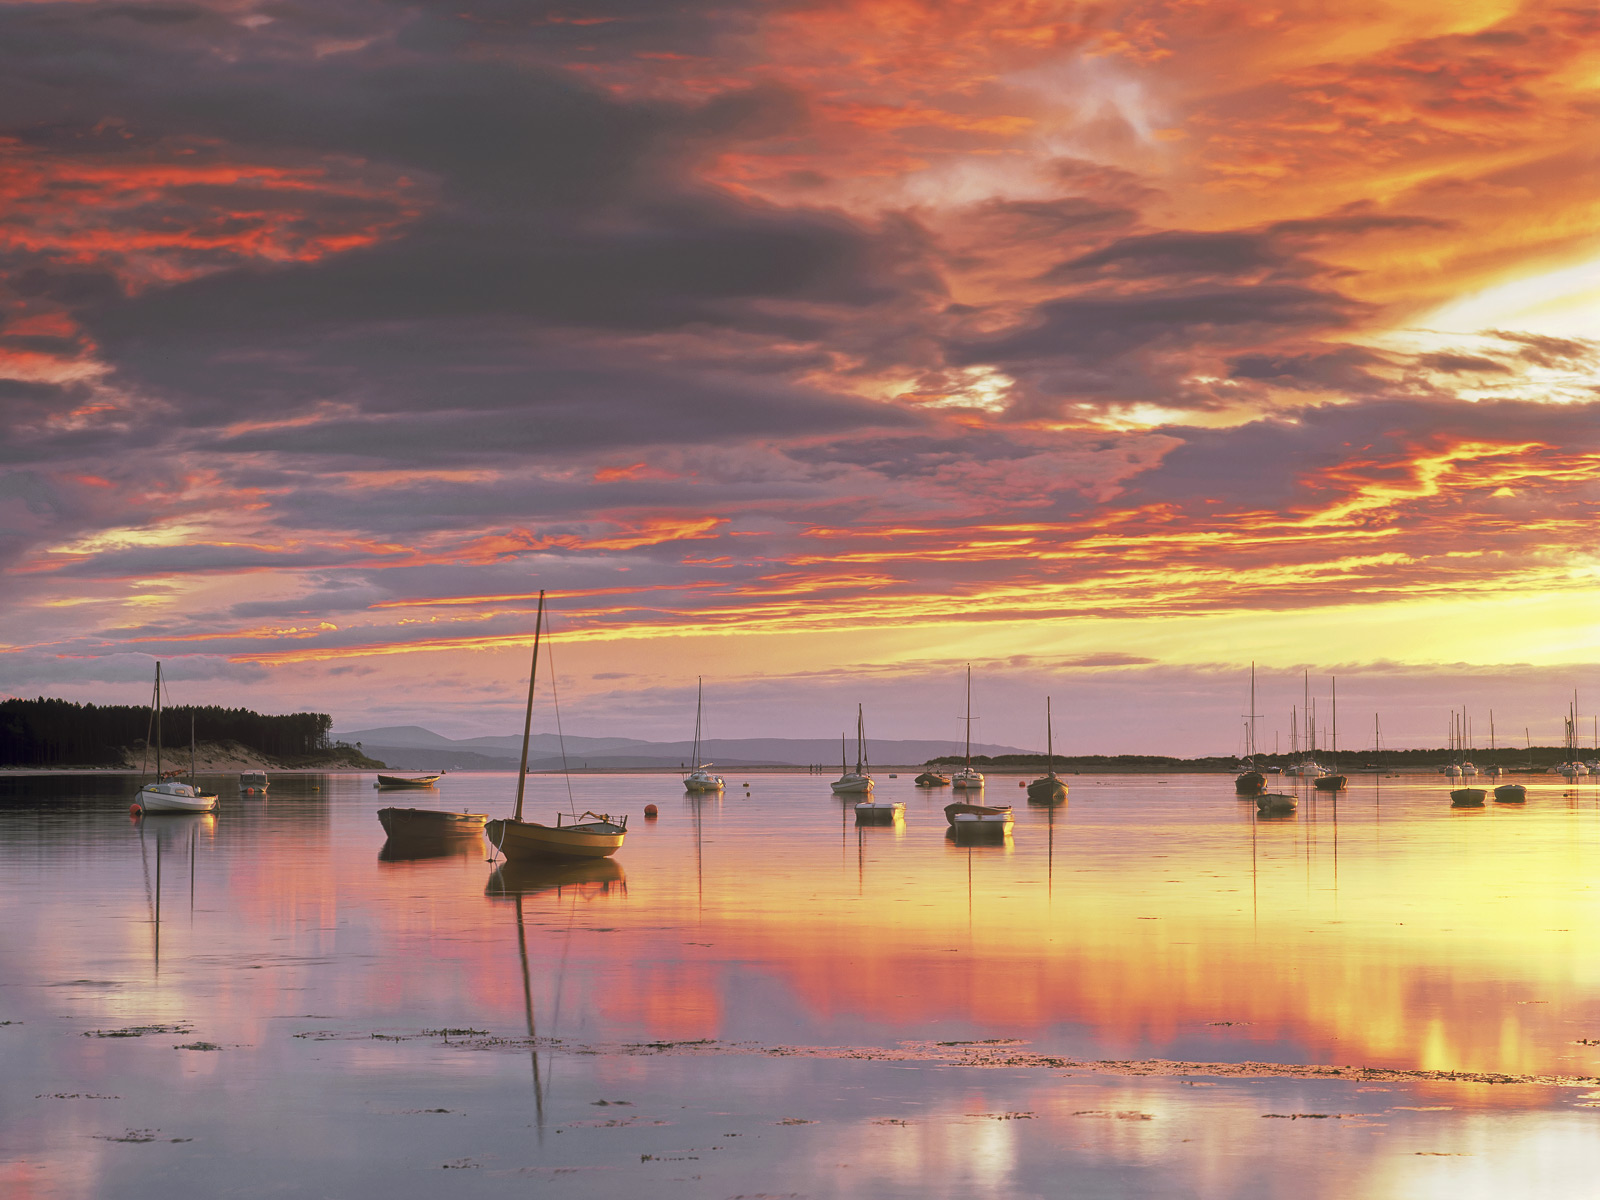 A breathtakingly vibrant mid-summer sunset overFindhorn bay lit up a vast expanse of sky. Combined with a breathlessly...